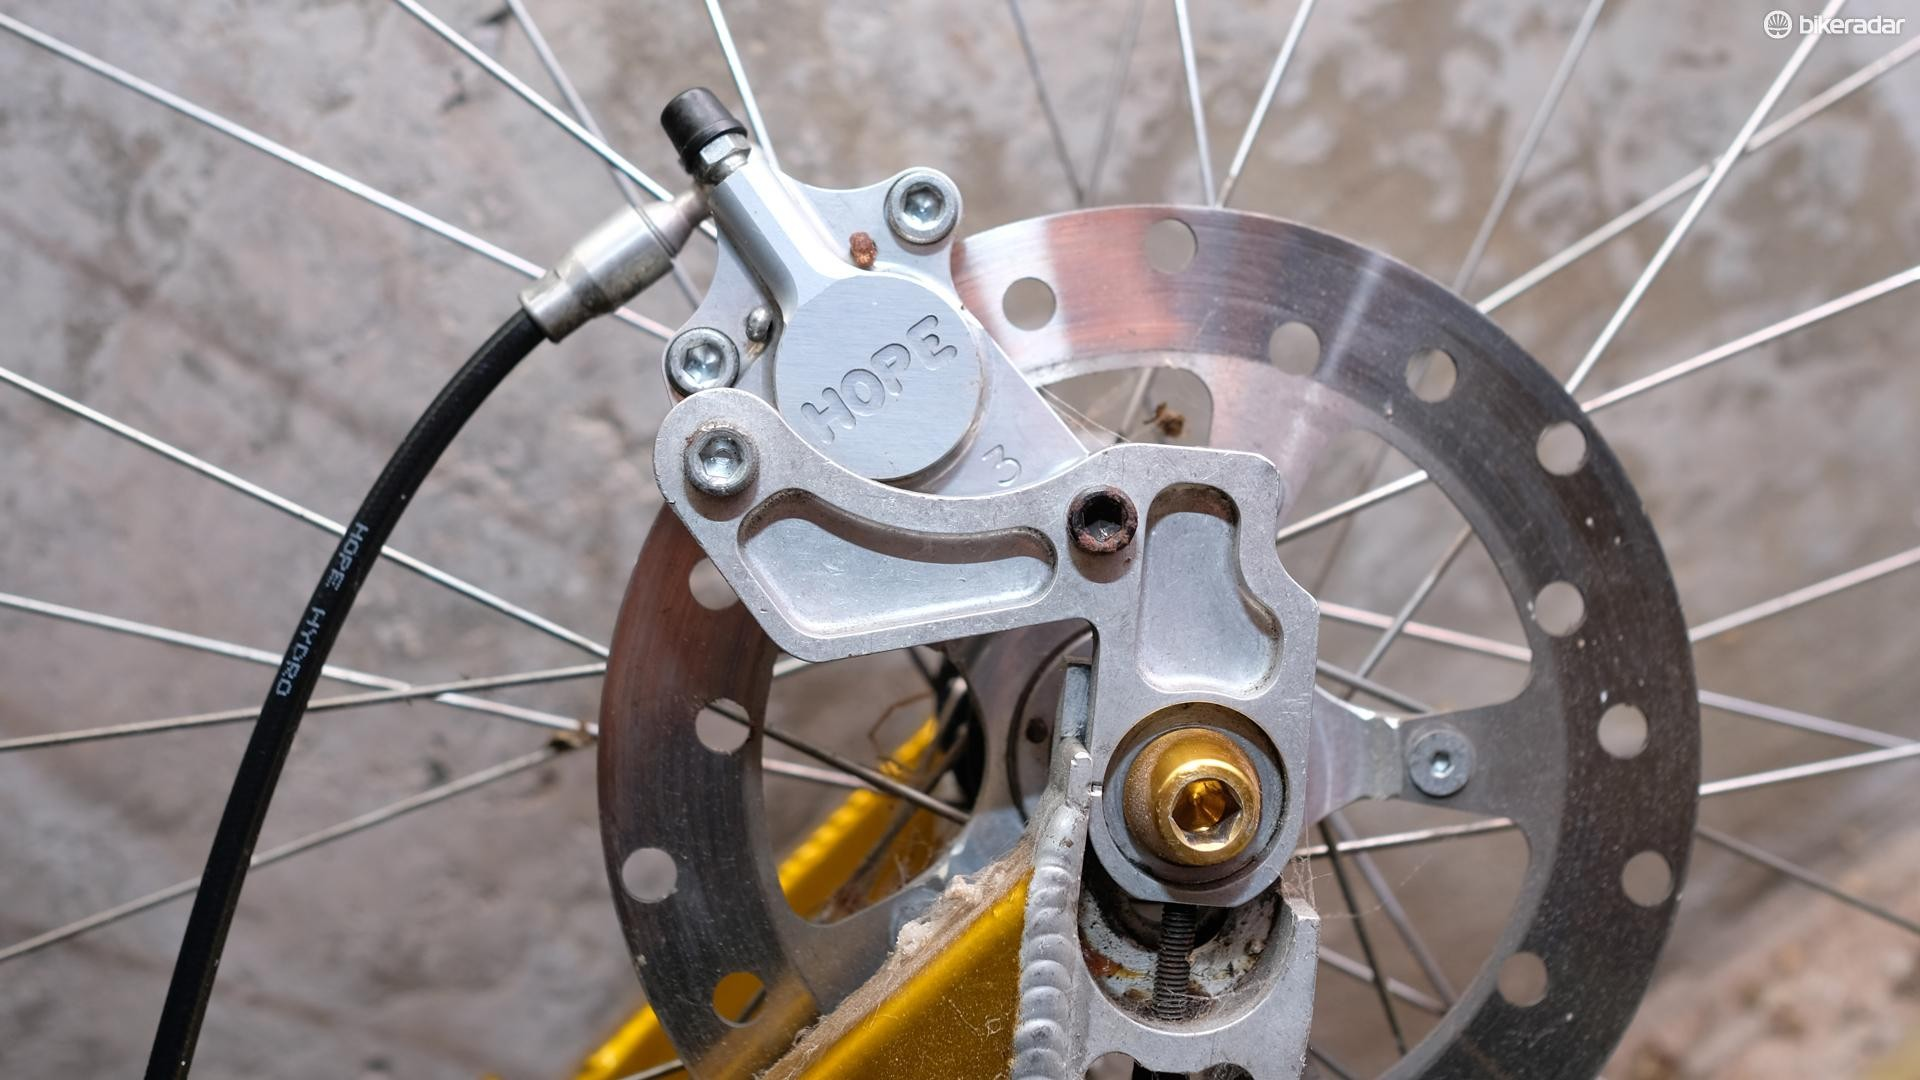 Mountain bike disc brakes have now seen more than two decades of refinement